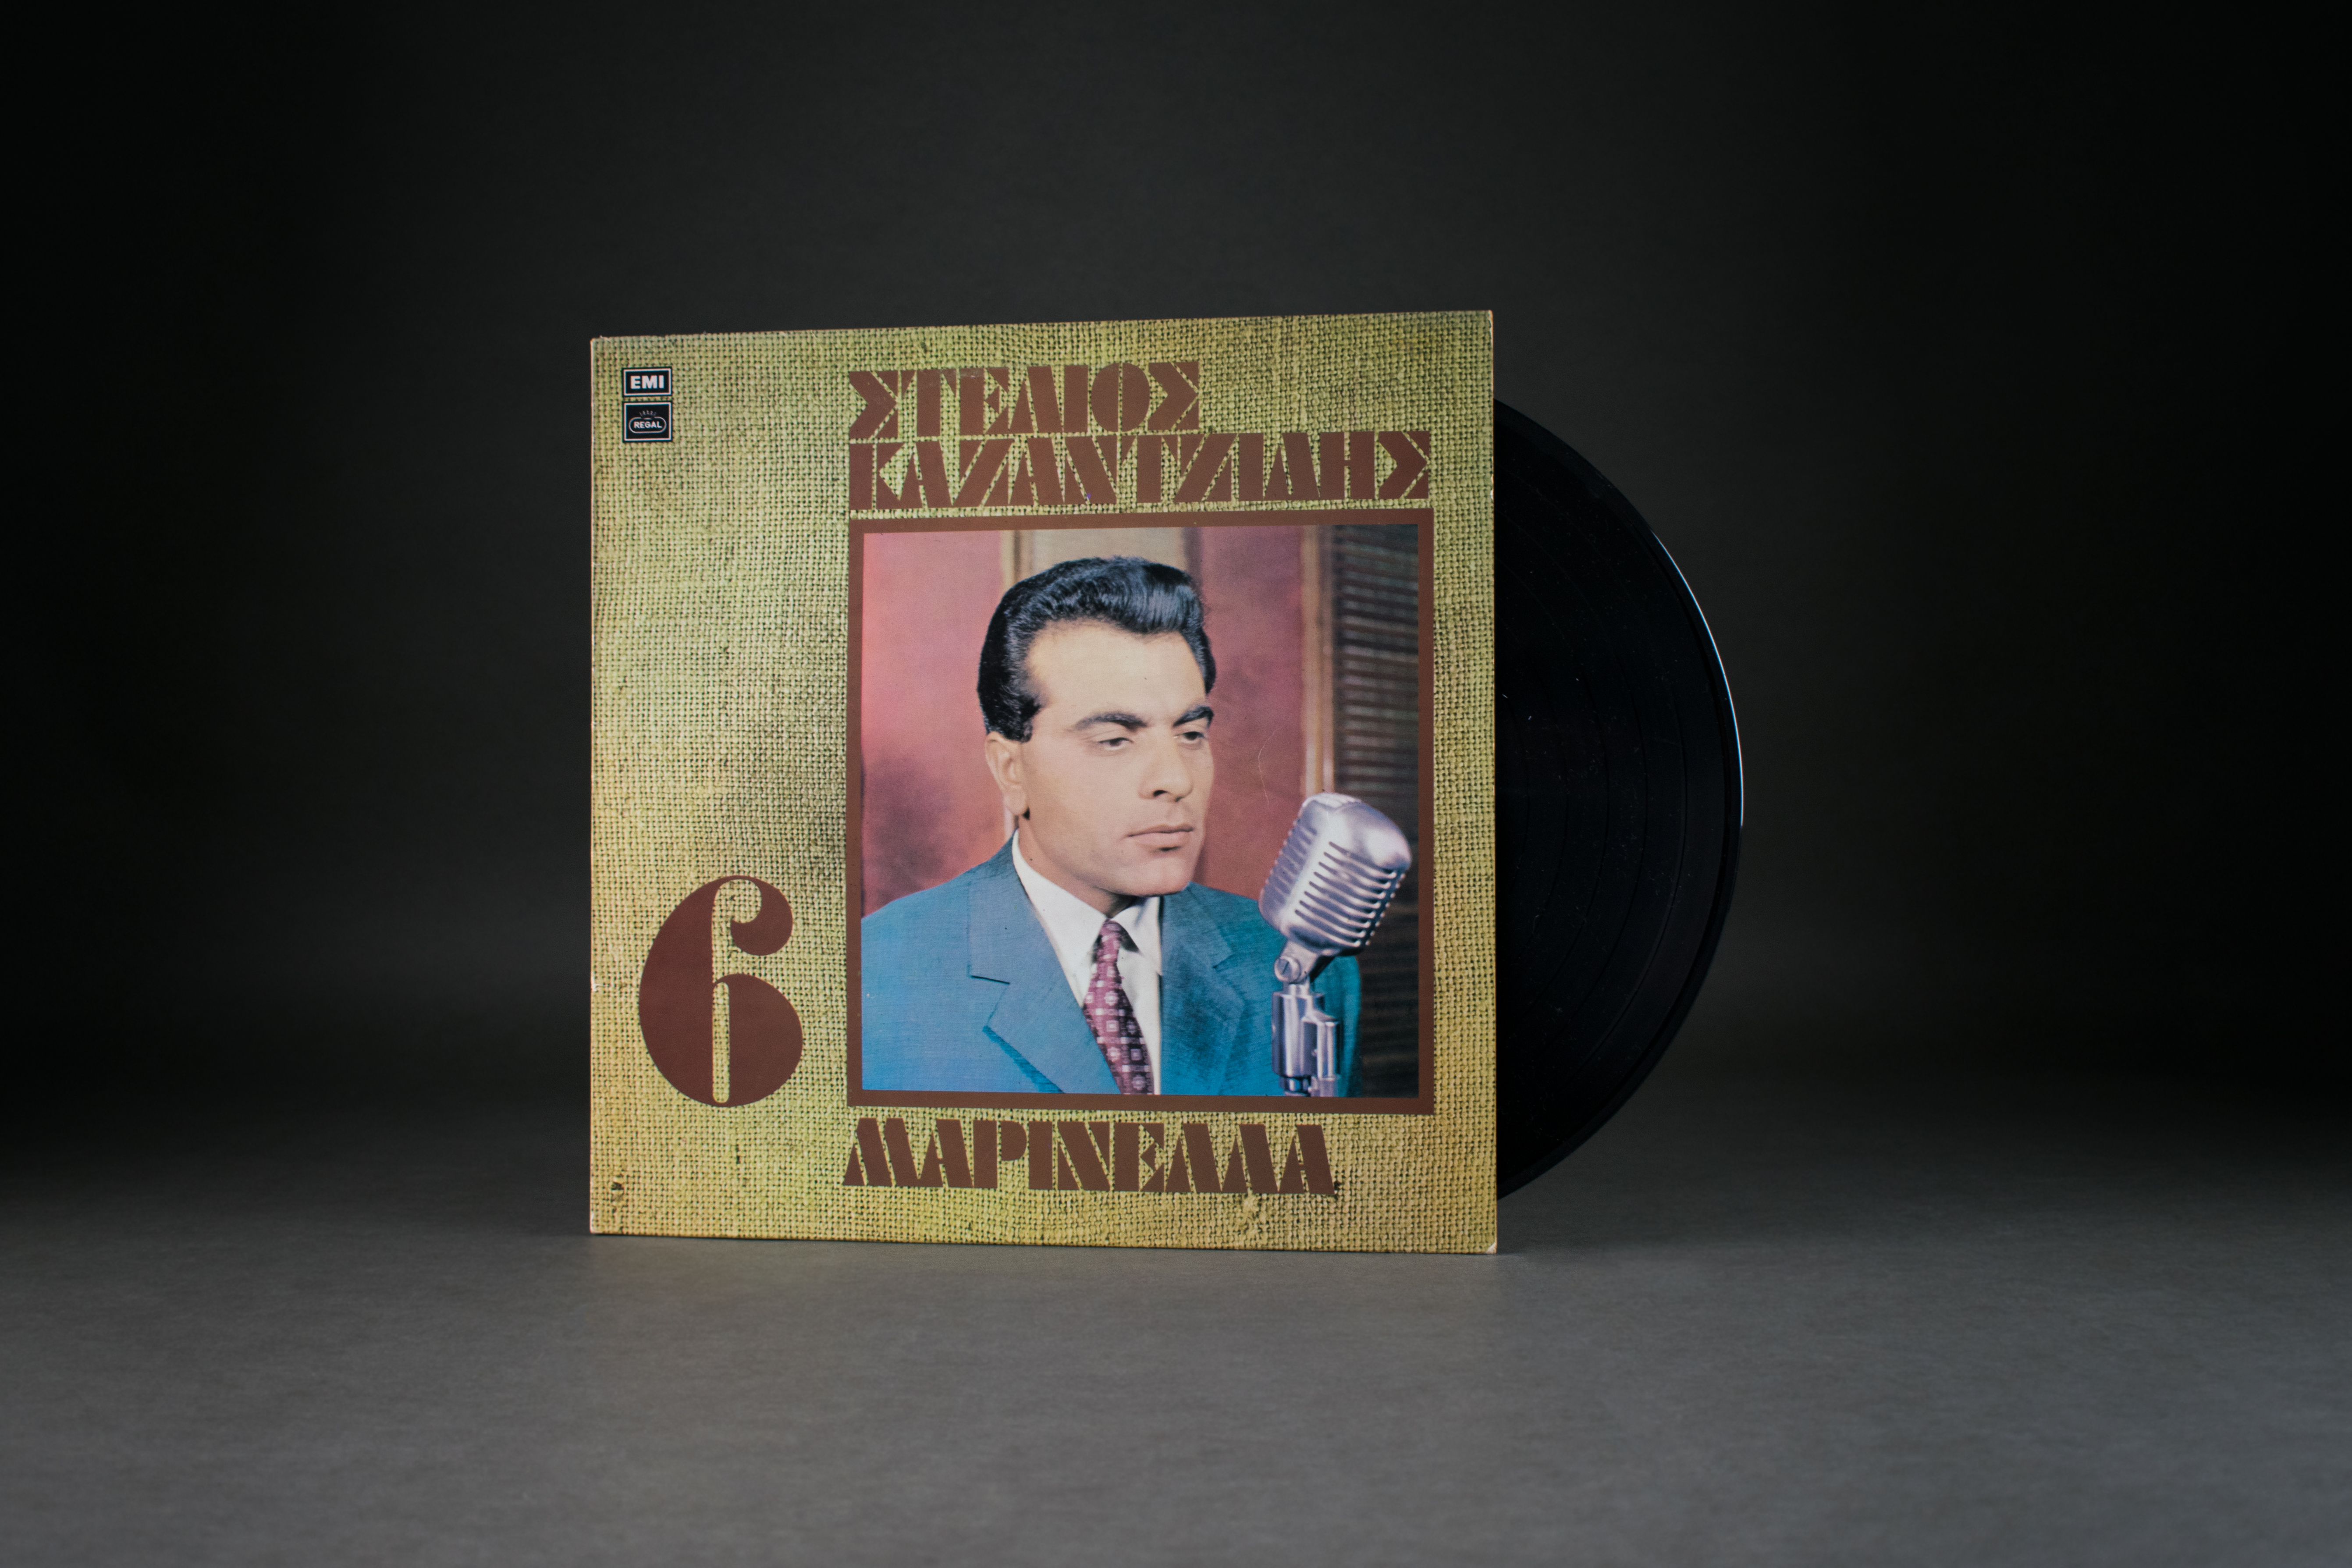 Long-playing record by Stelios Kazantzidis No.6., 1976. The Pontus-Greek singer Stelios Kazantzidis was one of the most popular singers among Greeks in Germany. In his songs he sang about homesickness, the longing for the abandoned homeland and gave a voice to the attitude towards life of the workers recruited from Greece. DOMiD Archive, Cologne, E 1473.0471